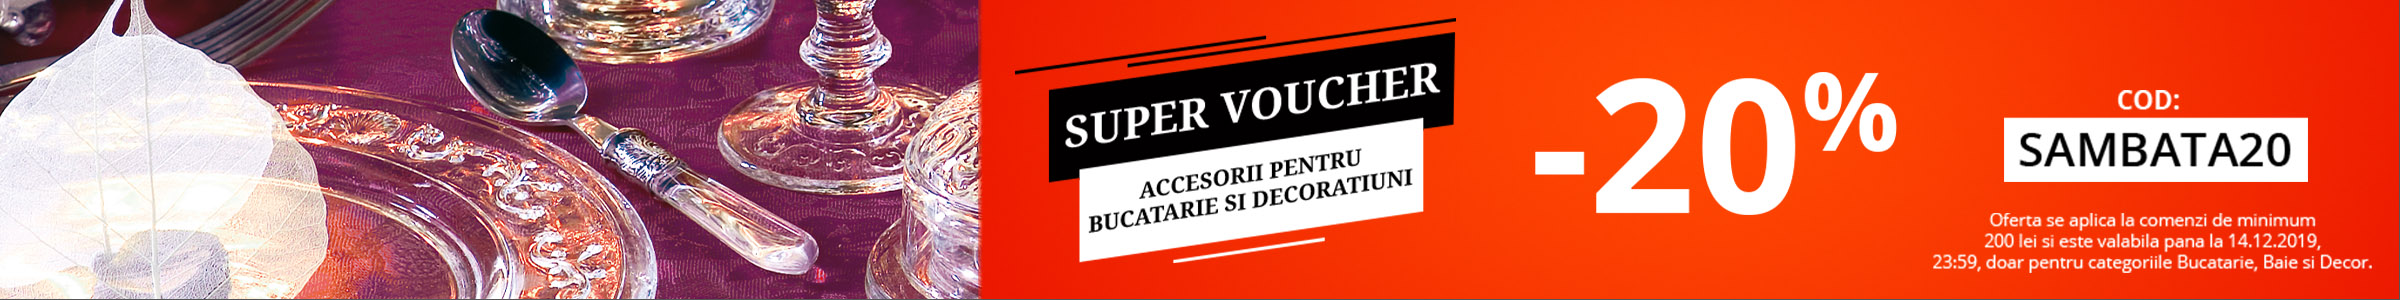 Super voucher - kitchen&bathro